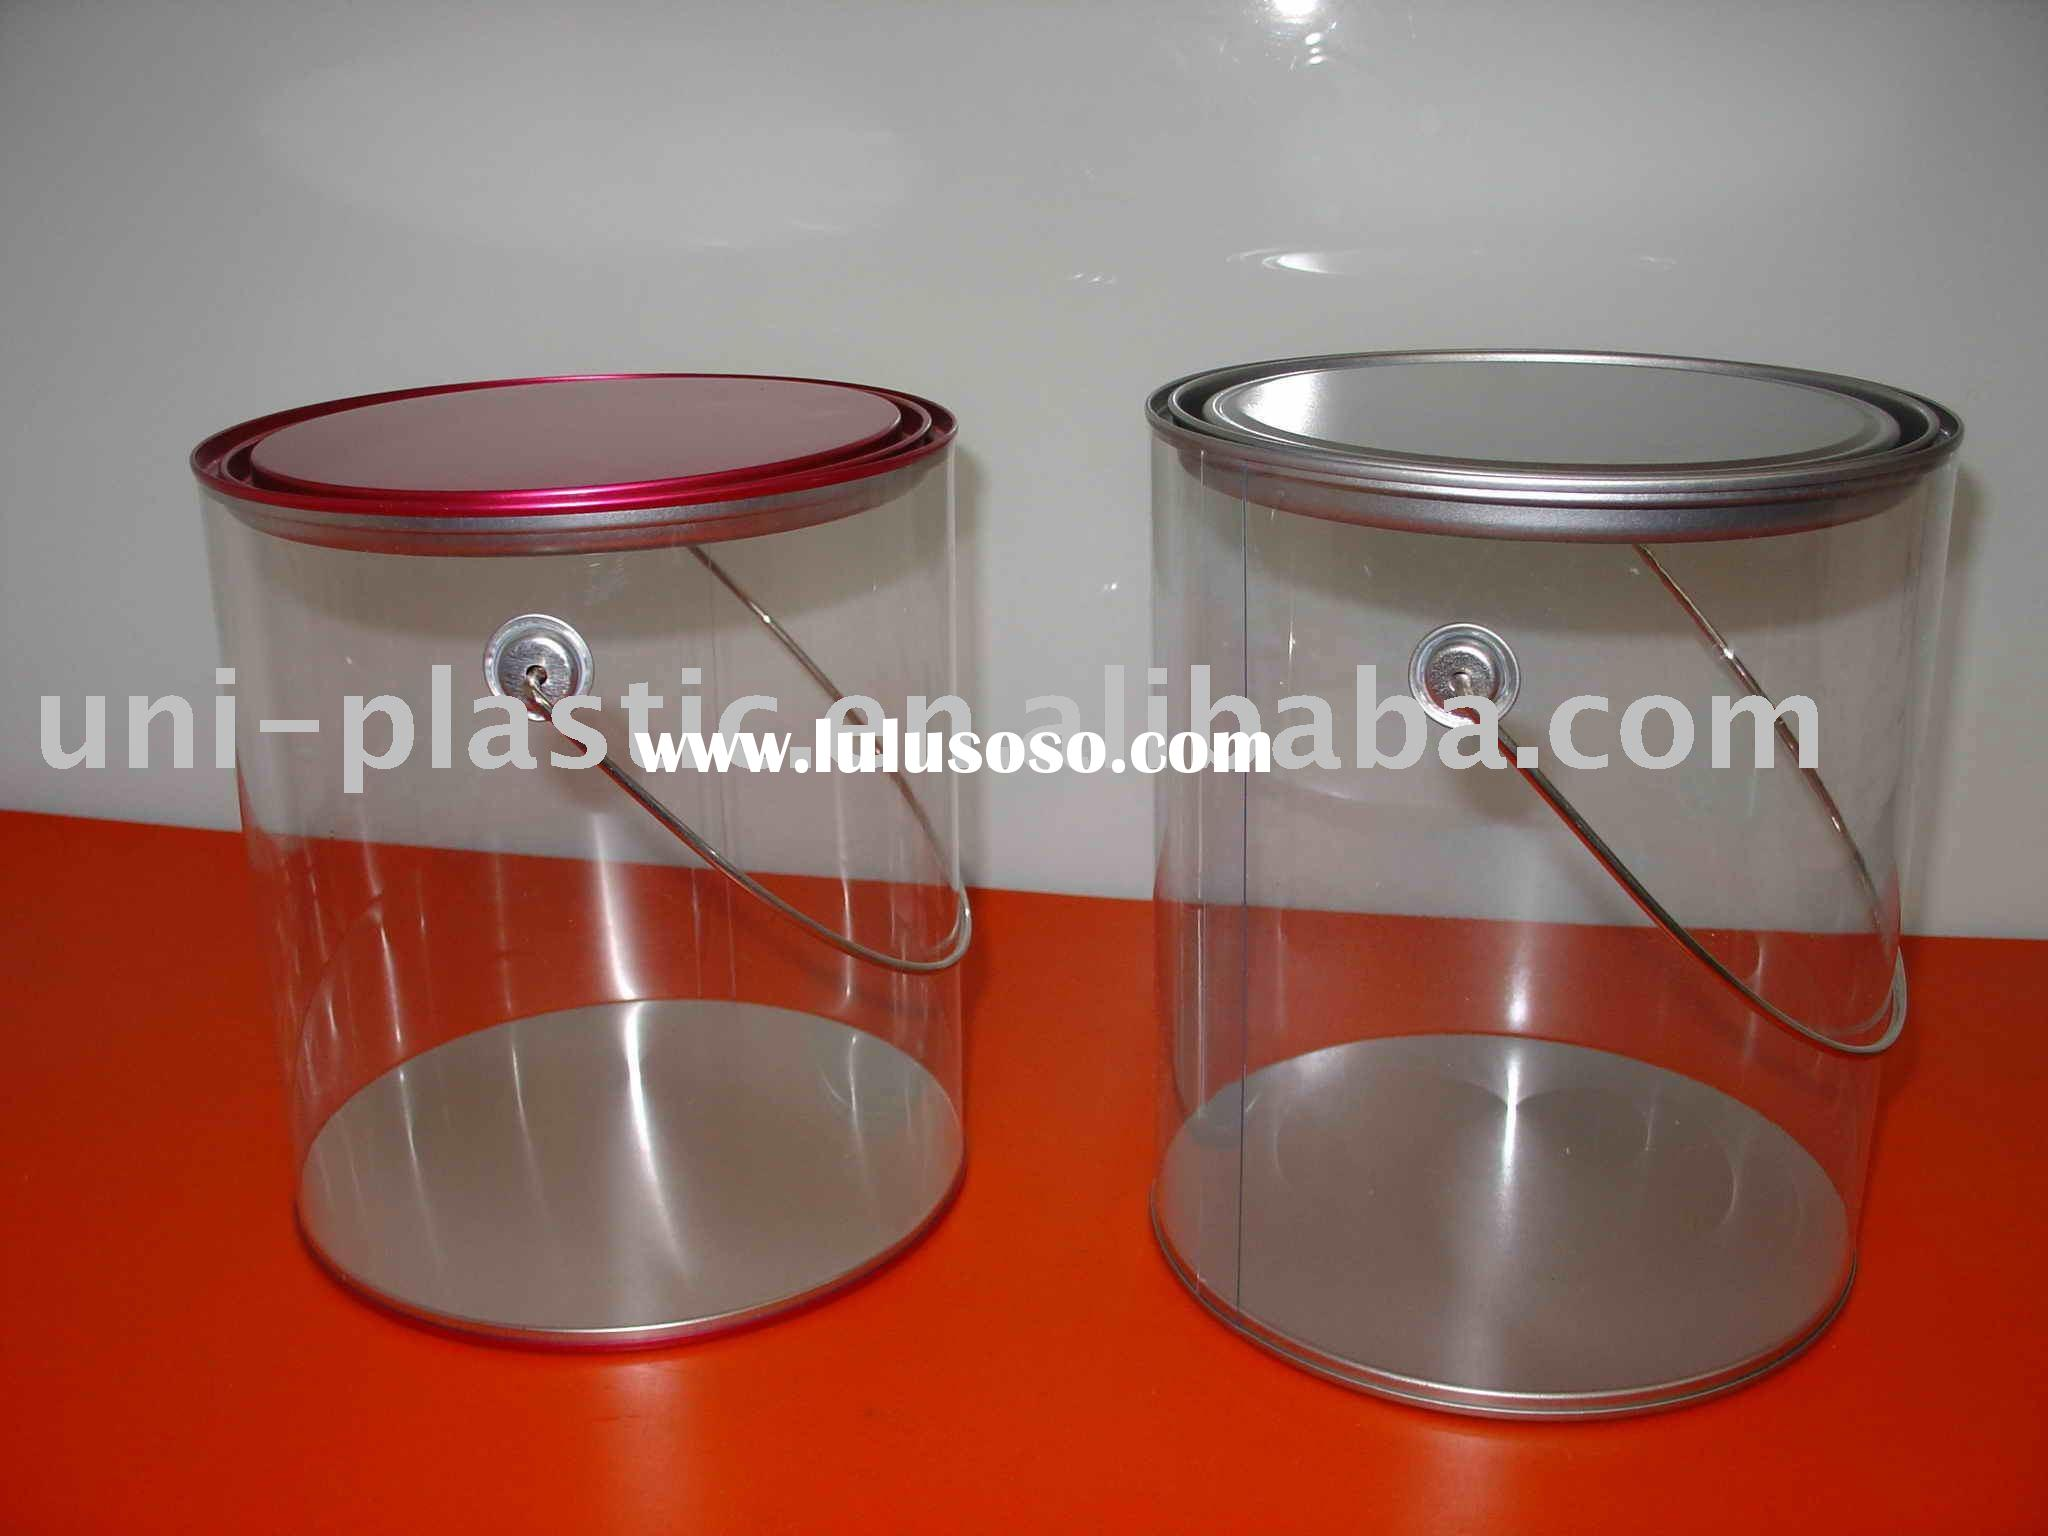 1 gallon clear paint cans wth handle for sale price for 1 gallon clear plastic paint cans